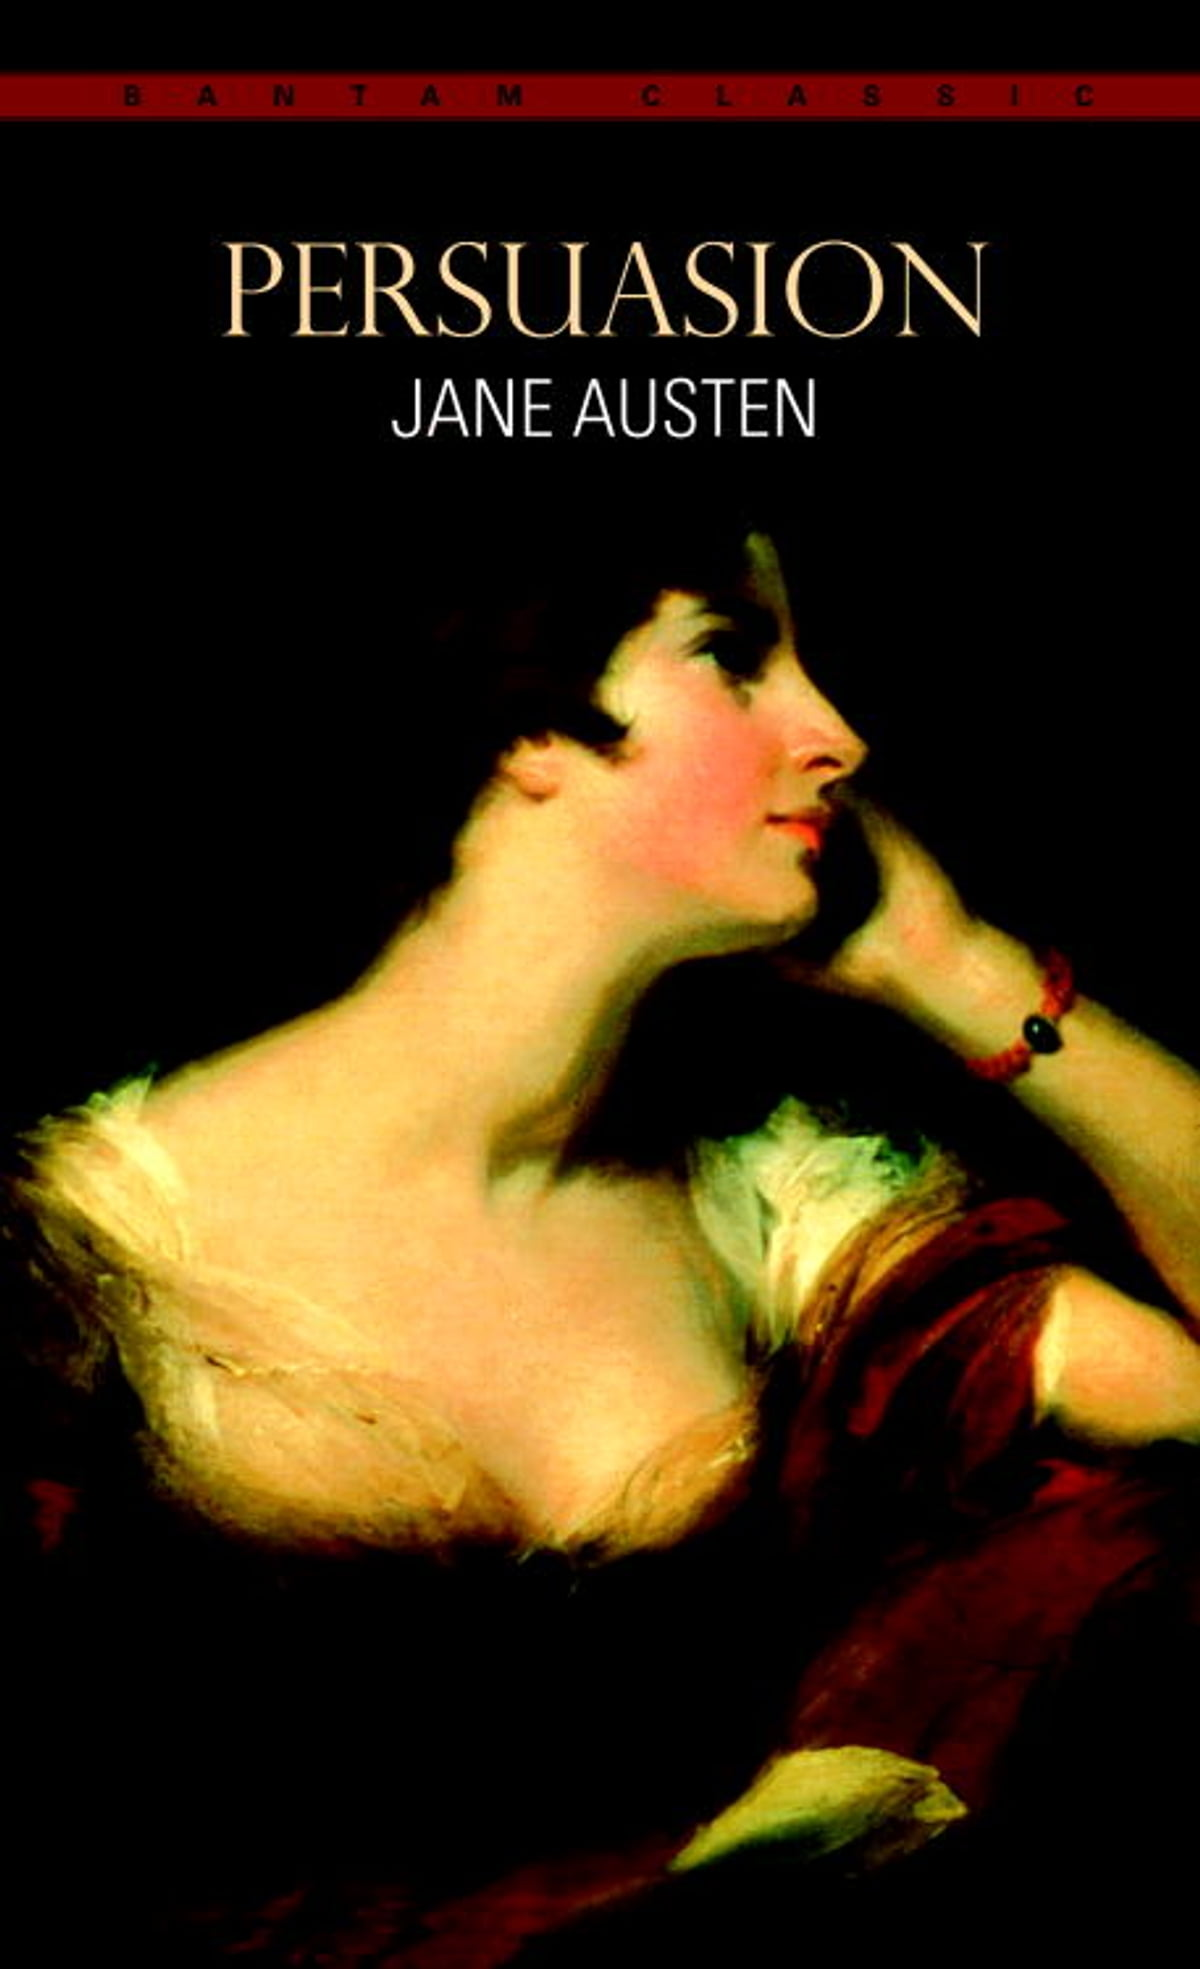 persuasion by jane austin Persuasion by jane austen is a 2016 enhanced media publication (originally published in 1817) a wonderfully pleasant classic by one of my favorite writers when i was invited to review a new book, the premise of which, is a modern -day retelling of jane austen's persuasion, i accepted immediately.